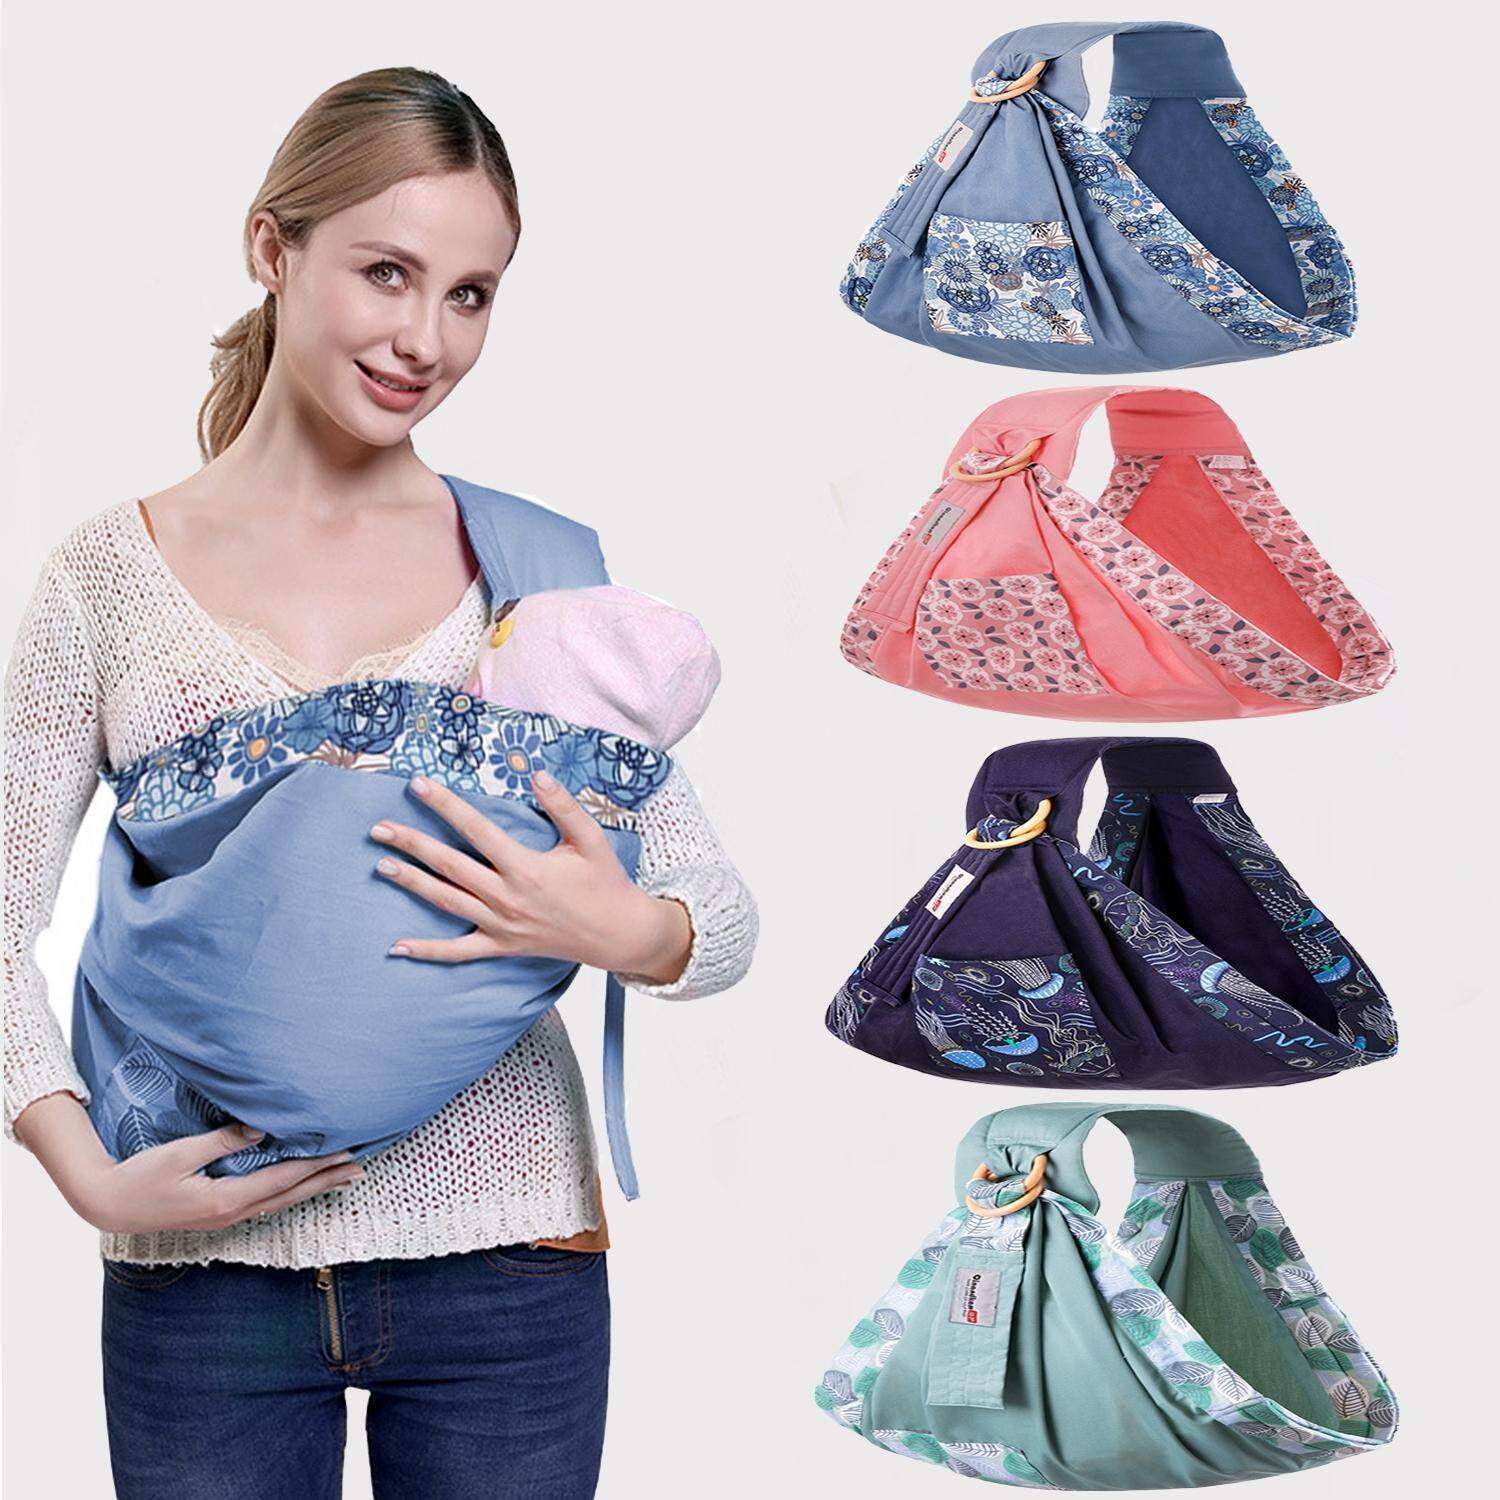 【Free Bag】Baby Wrap Carrier with Storage Bag for Toddlers Infants